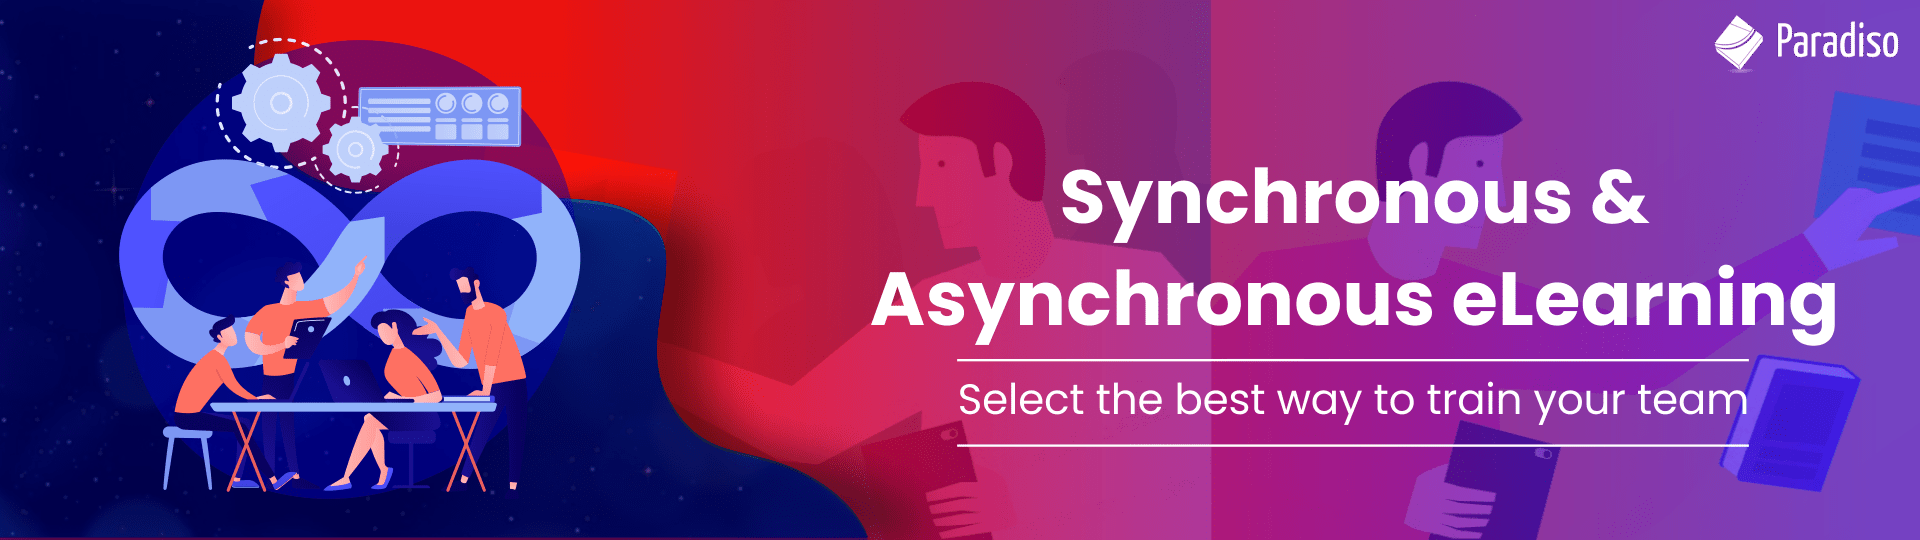 Synchronous and Asynchronous eLearning